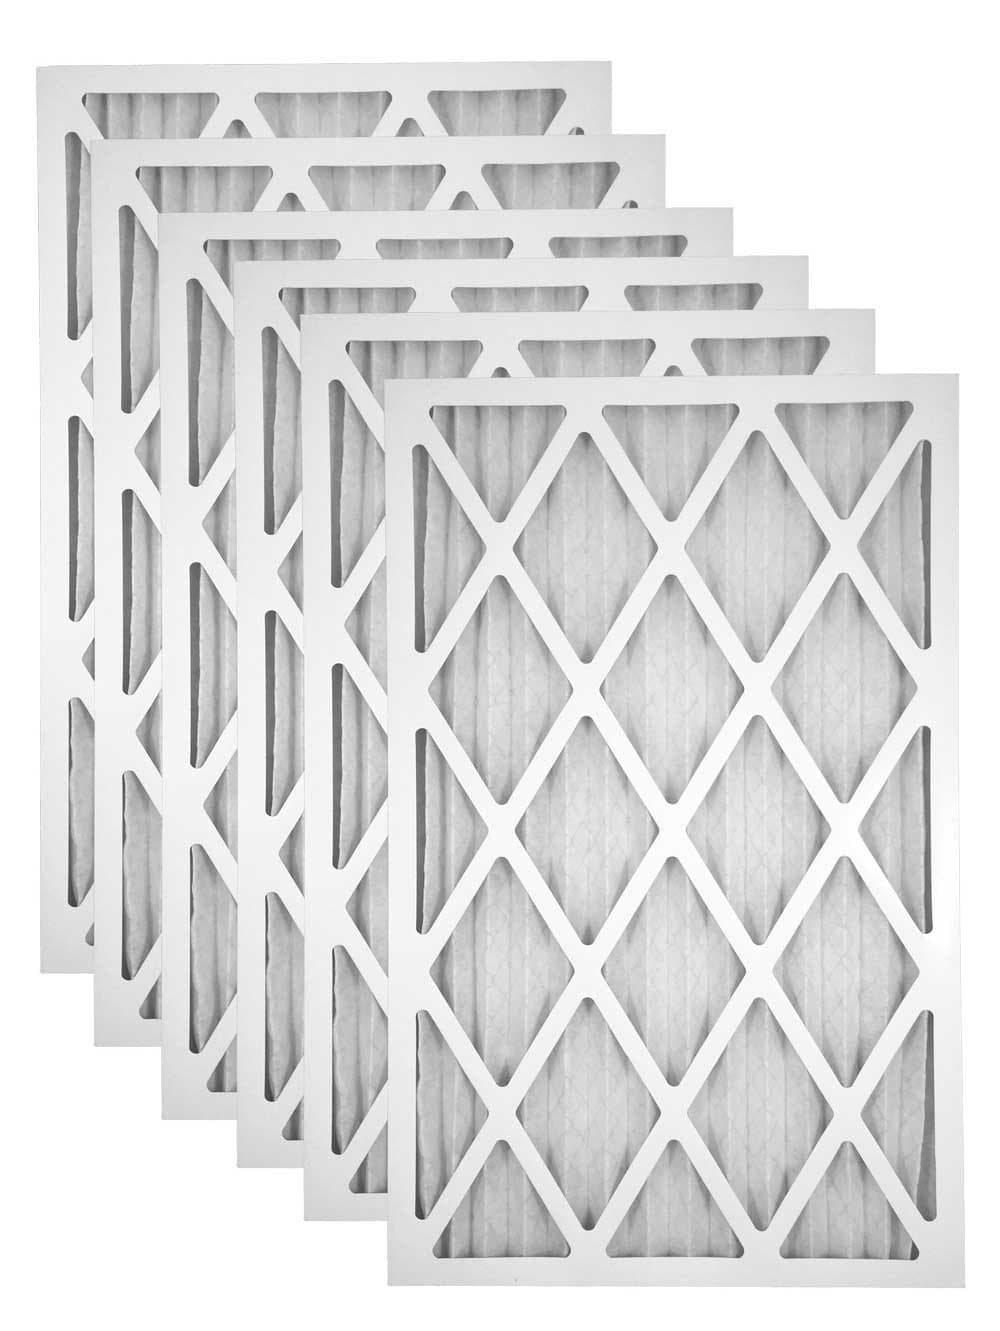 18x30x1 Merv 8 Pleated AC Furnace Filter - Case of 6 by Atomic Filters